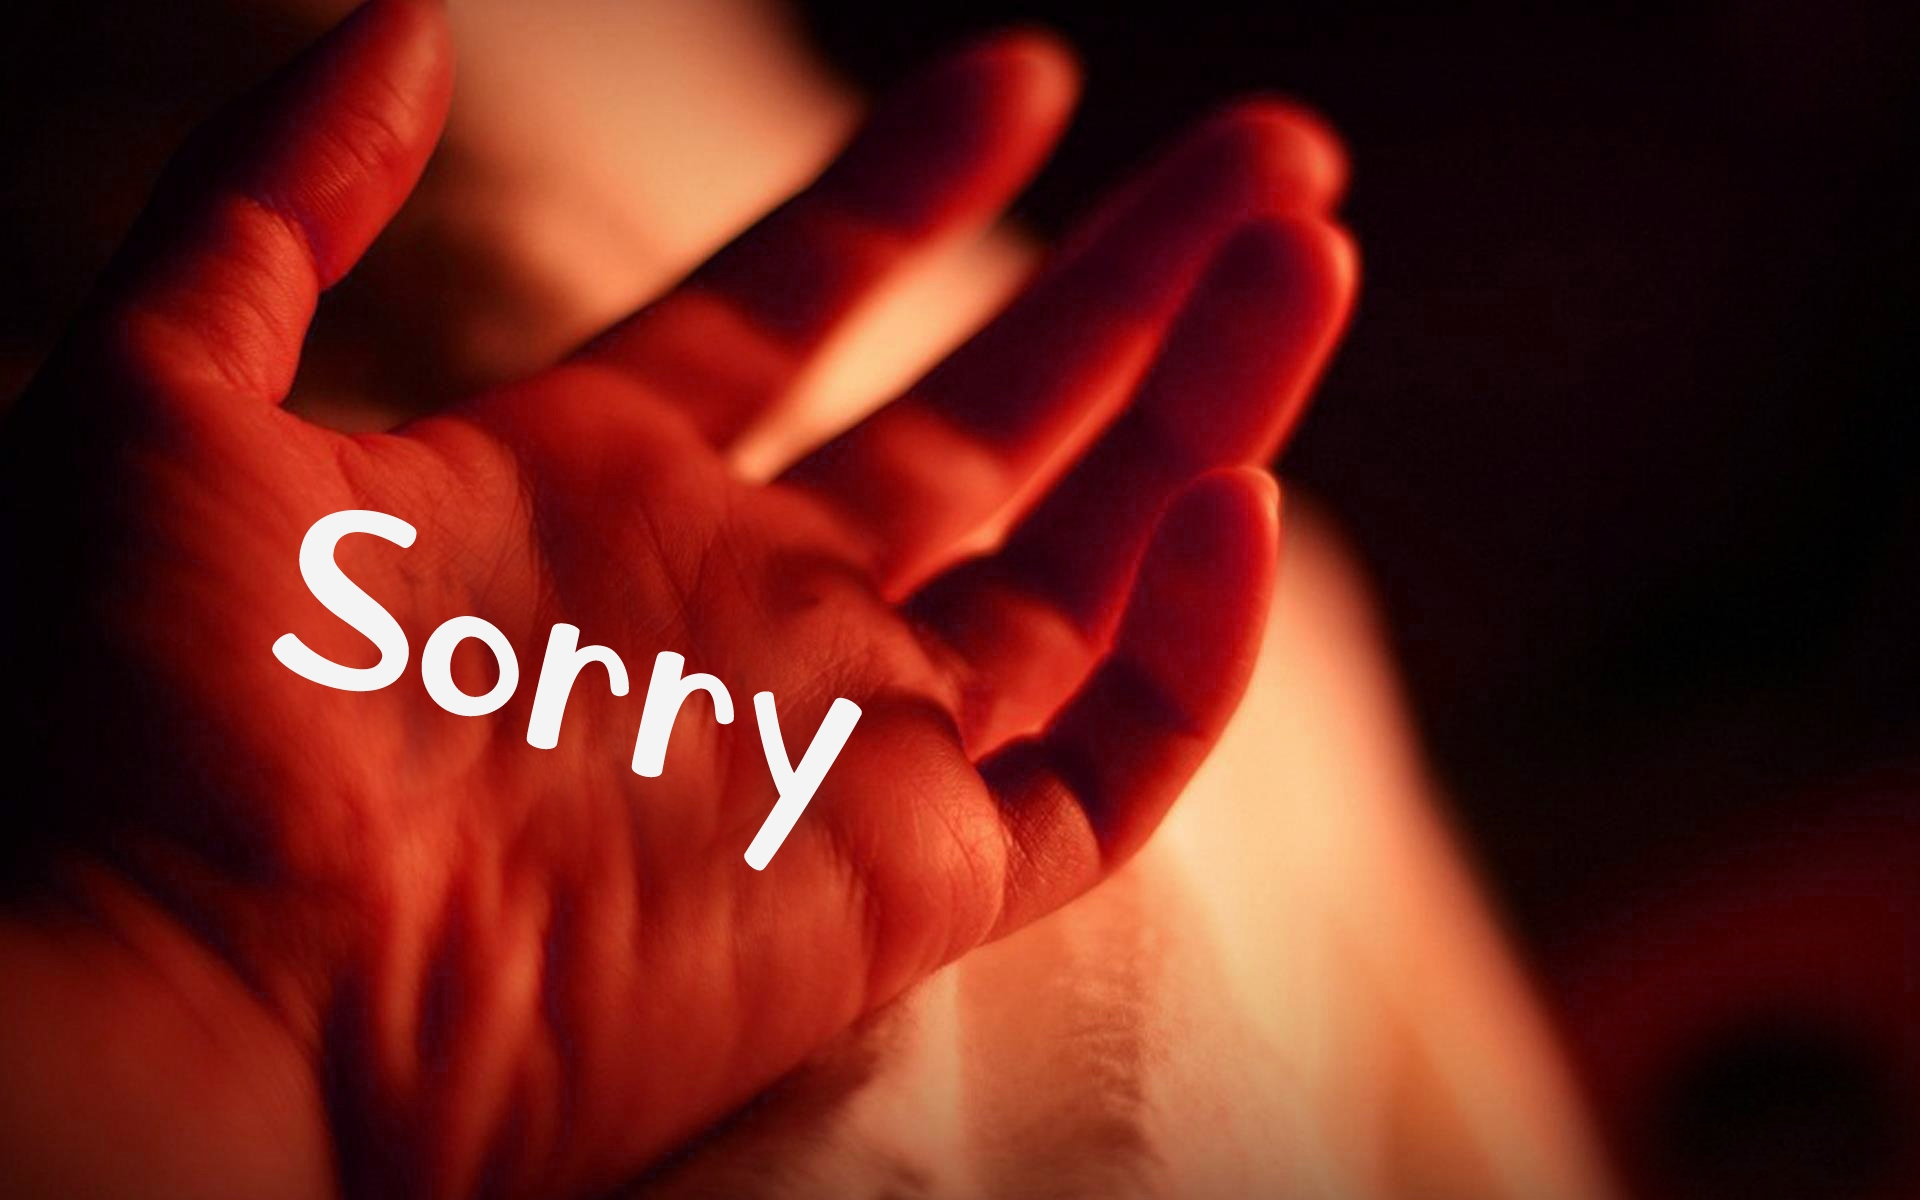 I am Sorry Images Pics Free for Facebook